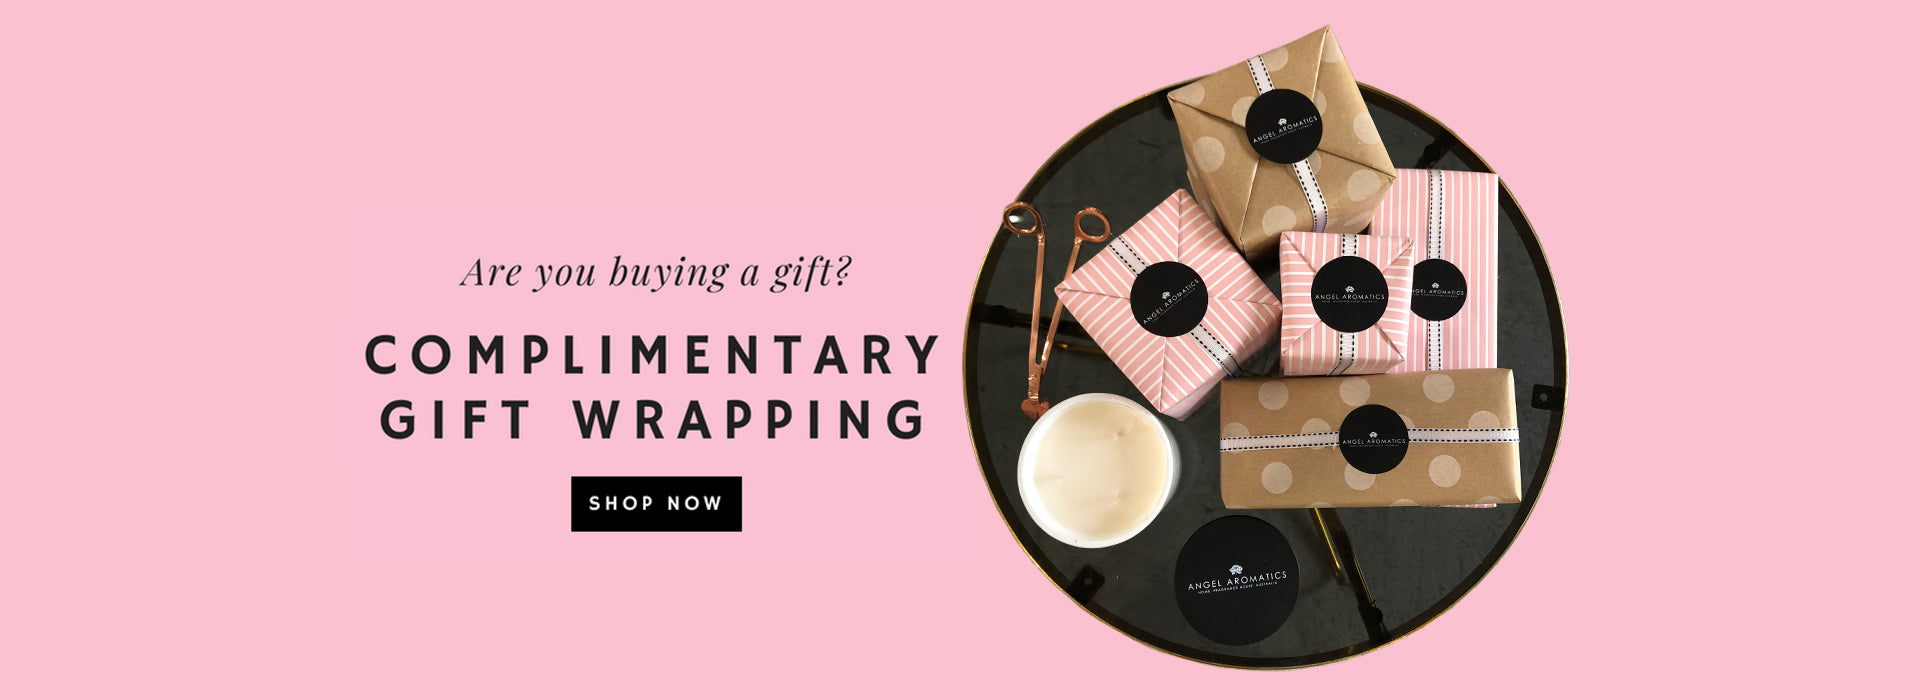 complimentary-gift-wrapping